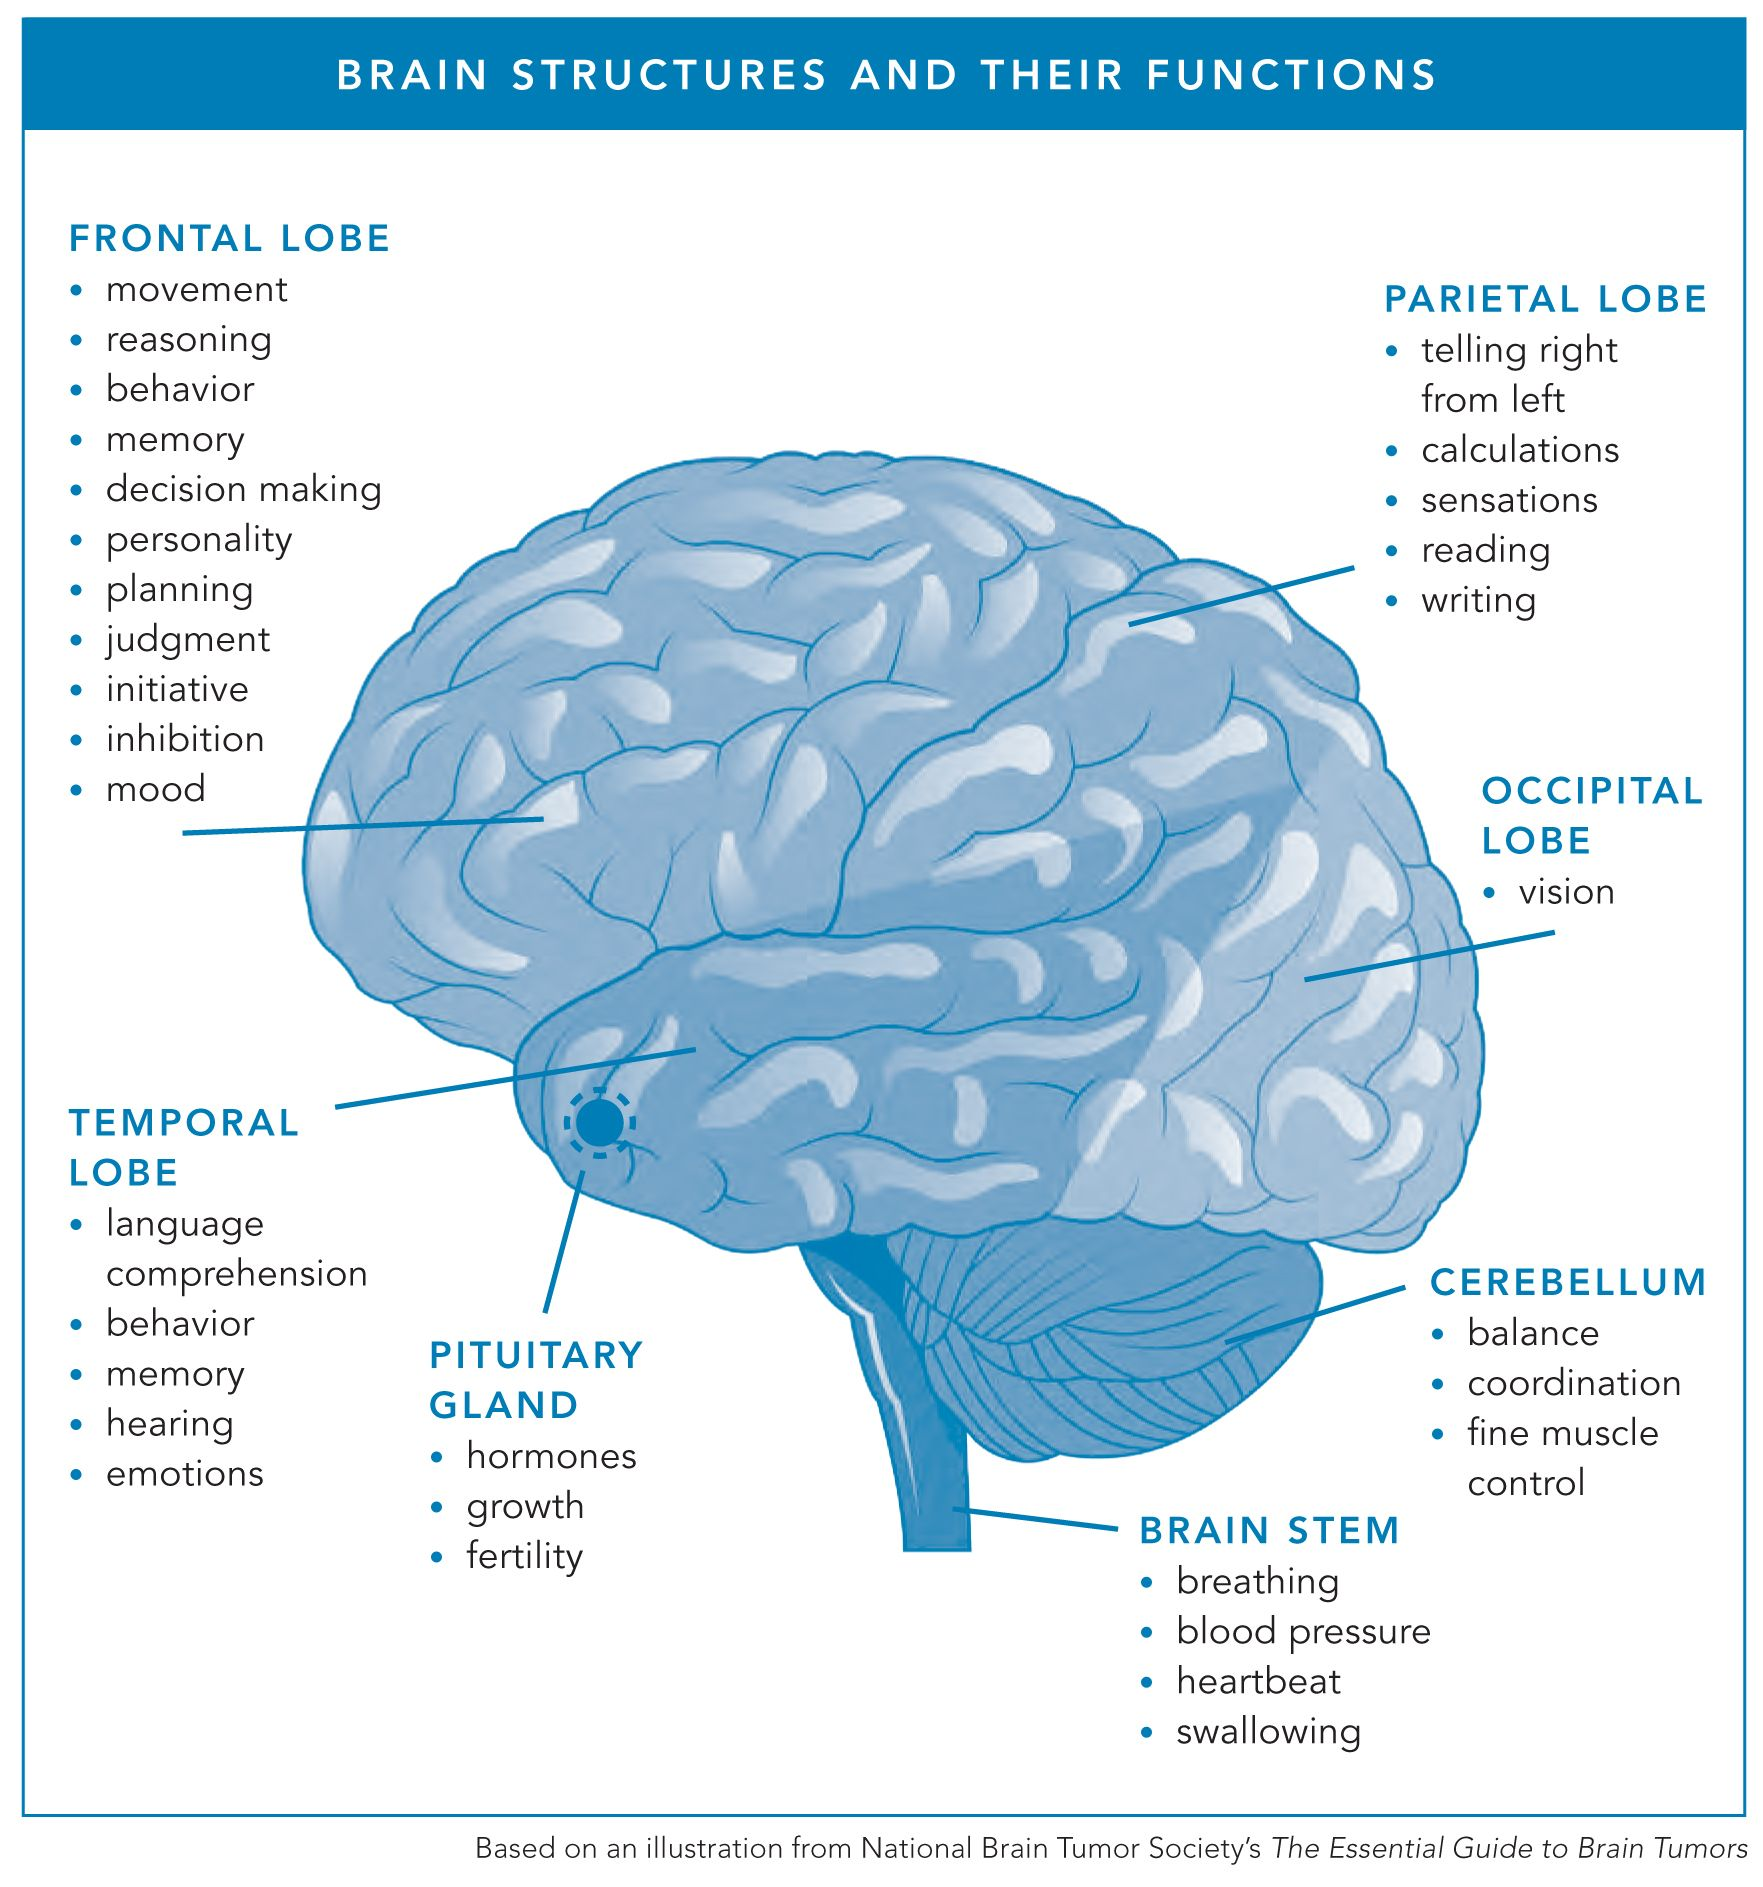 Brain Structures And Functions | Brain Cancer Patient ...